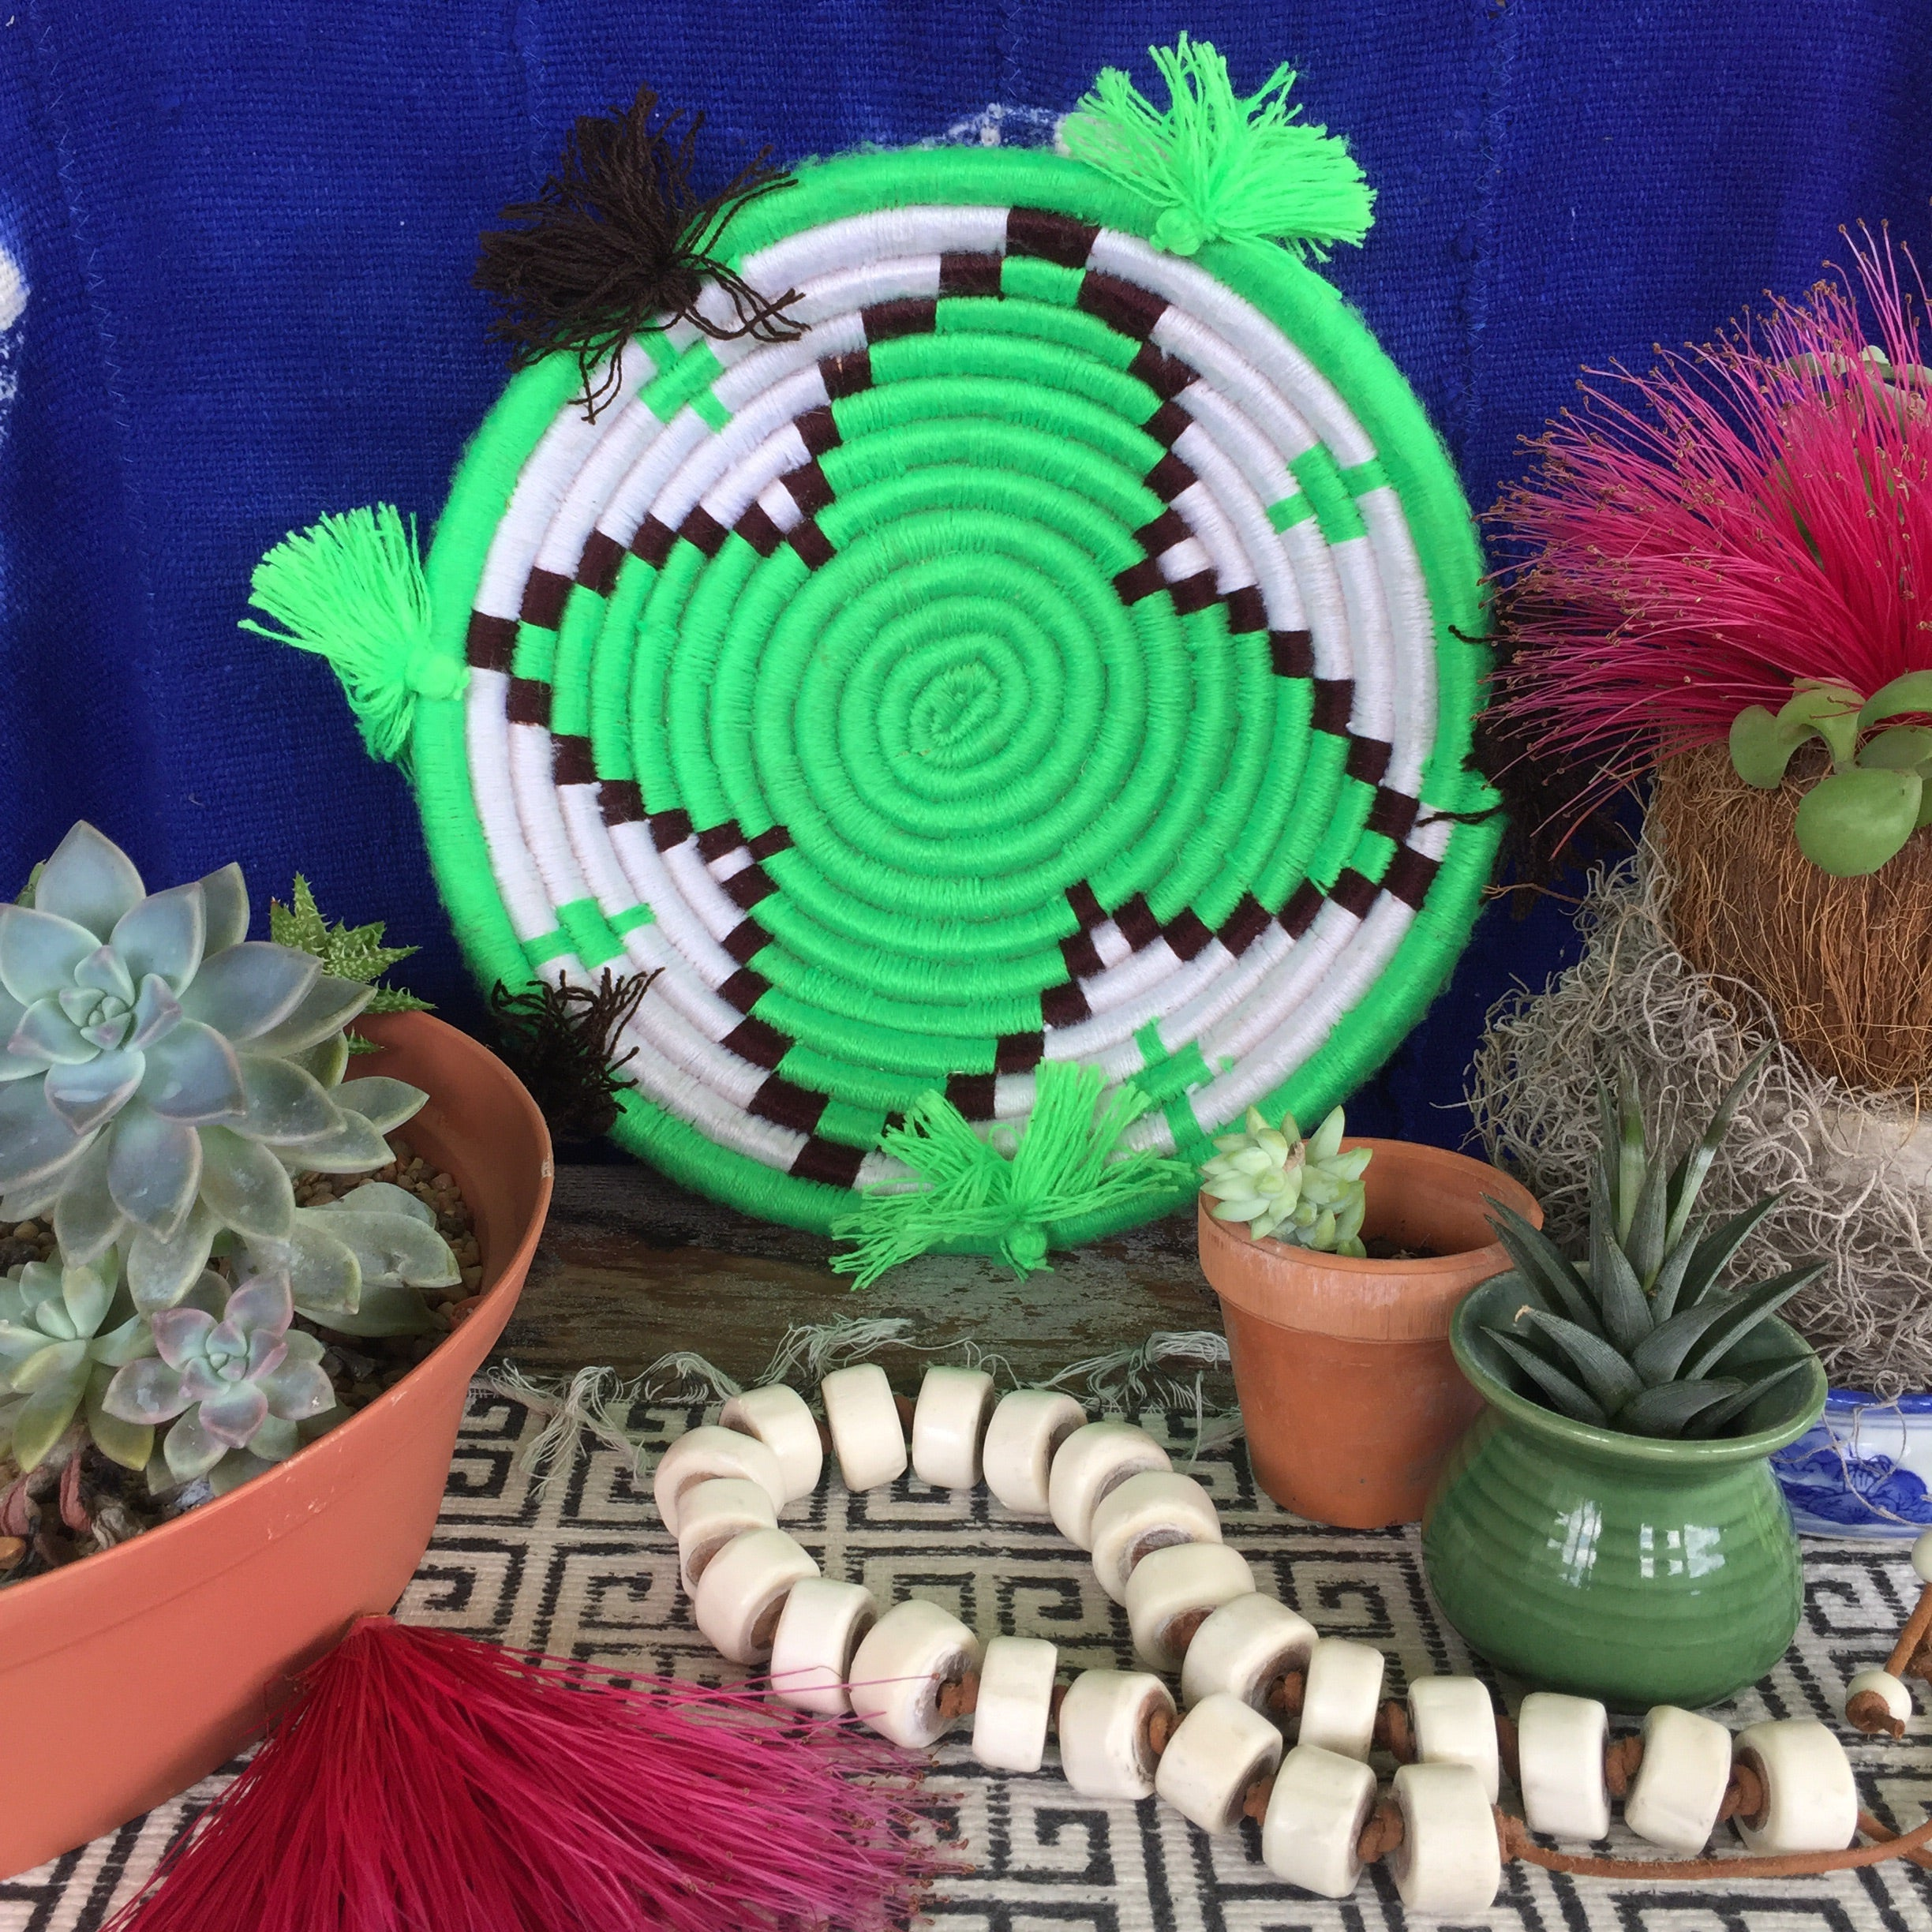 Moroccan Berber Plates | Decorative Basket| Centerpiece - Honorooroo Lifestyle